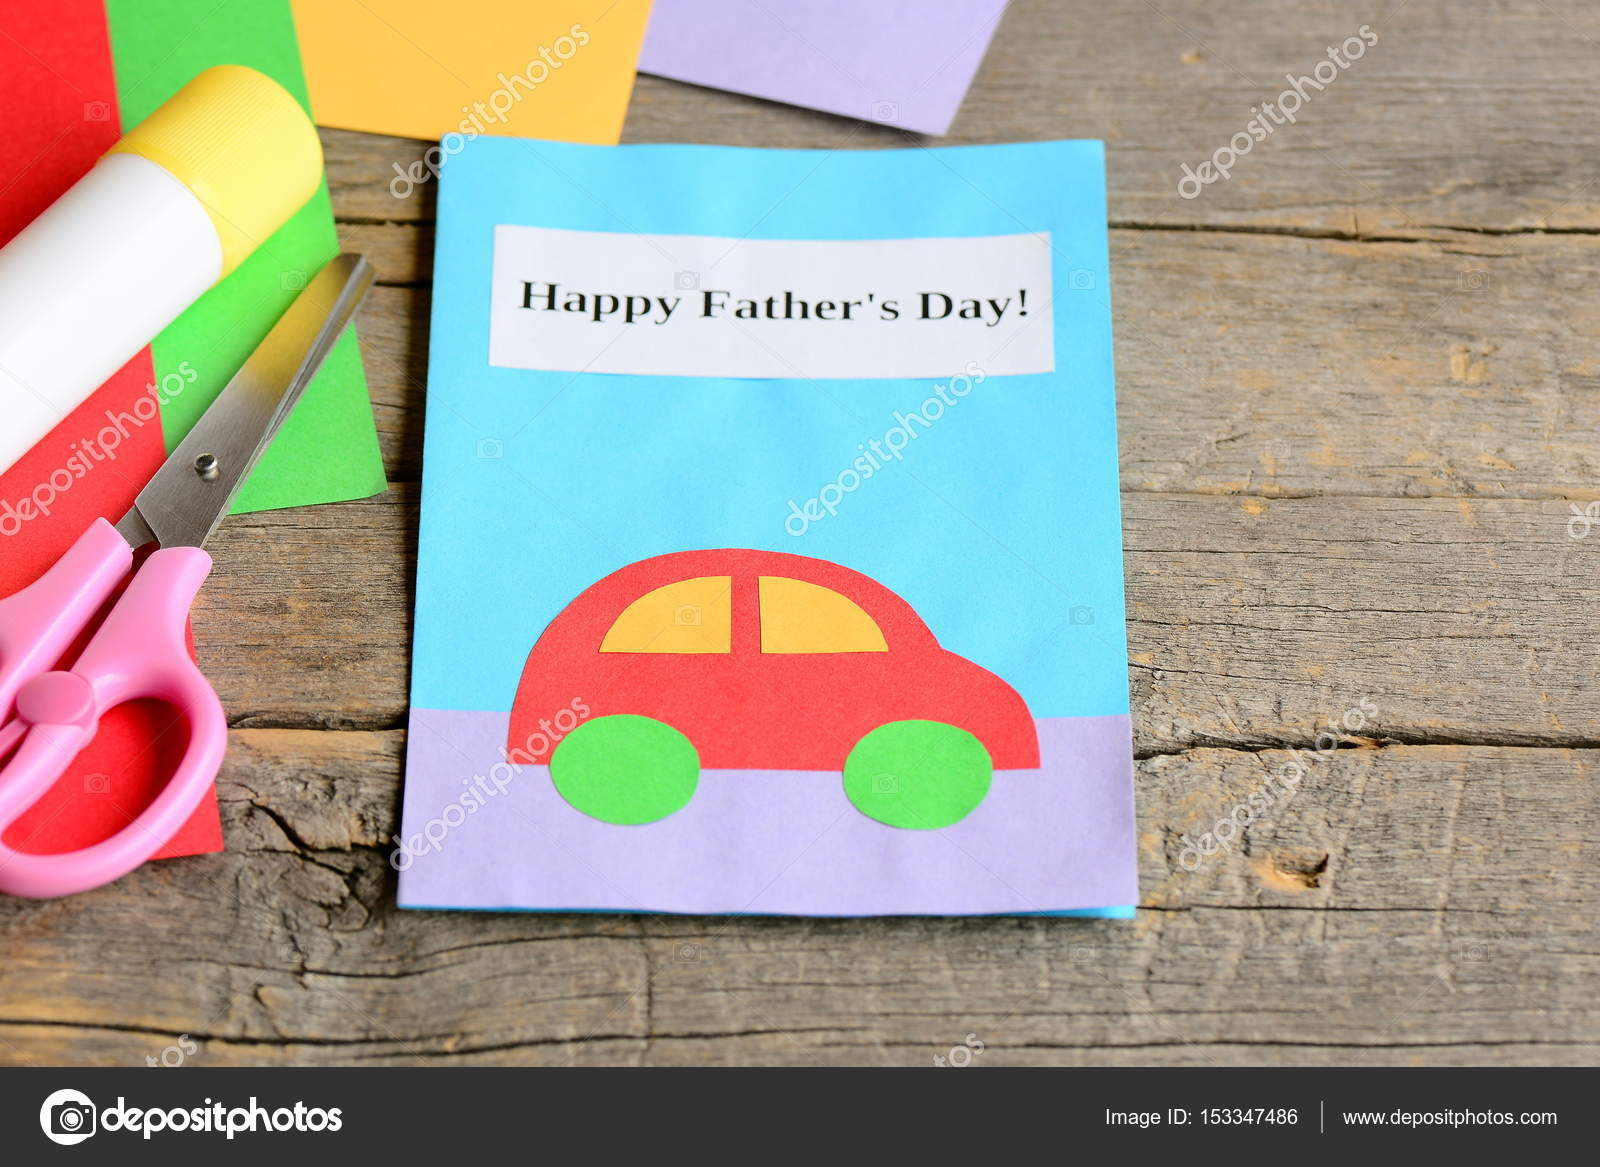 Happy Fathers Day Card Colored Paper Sheets Scissors Glue On